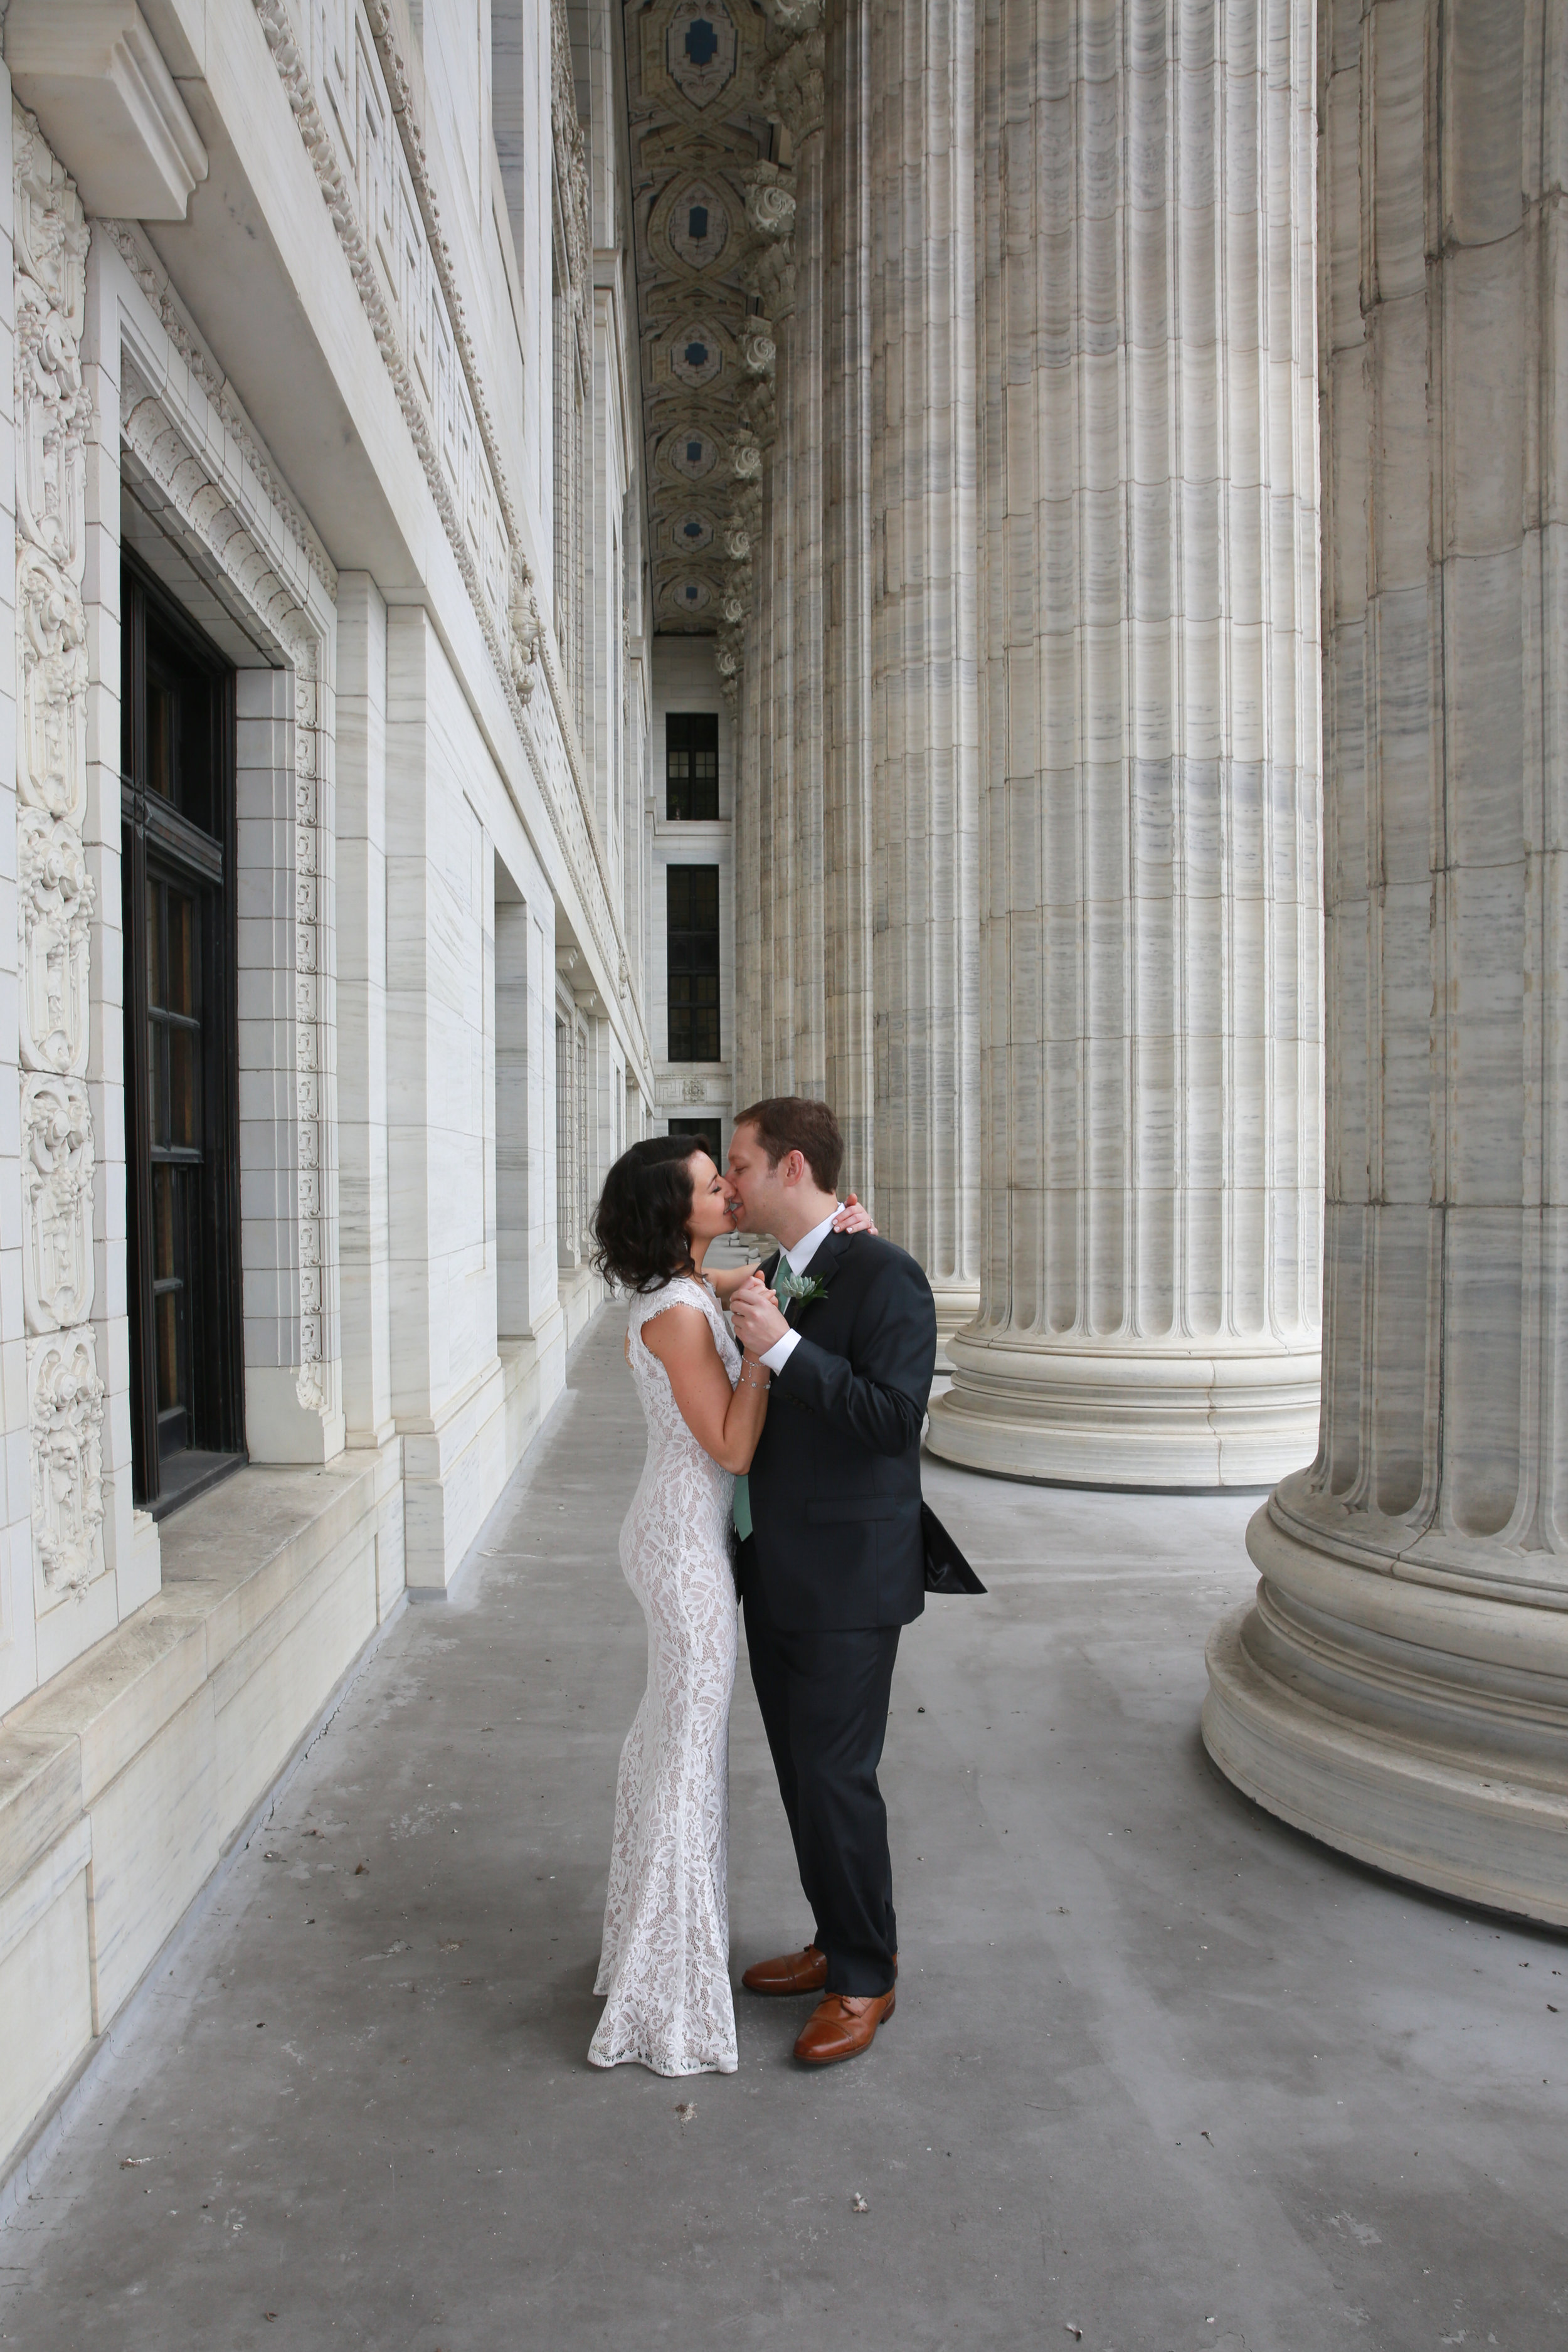 Wedding Couple on State Street in Albany, NY